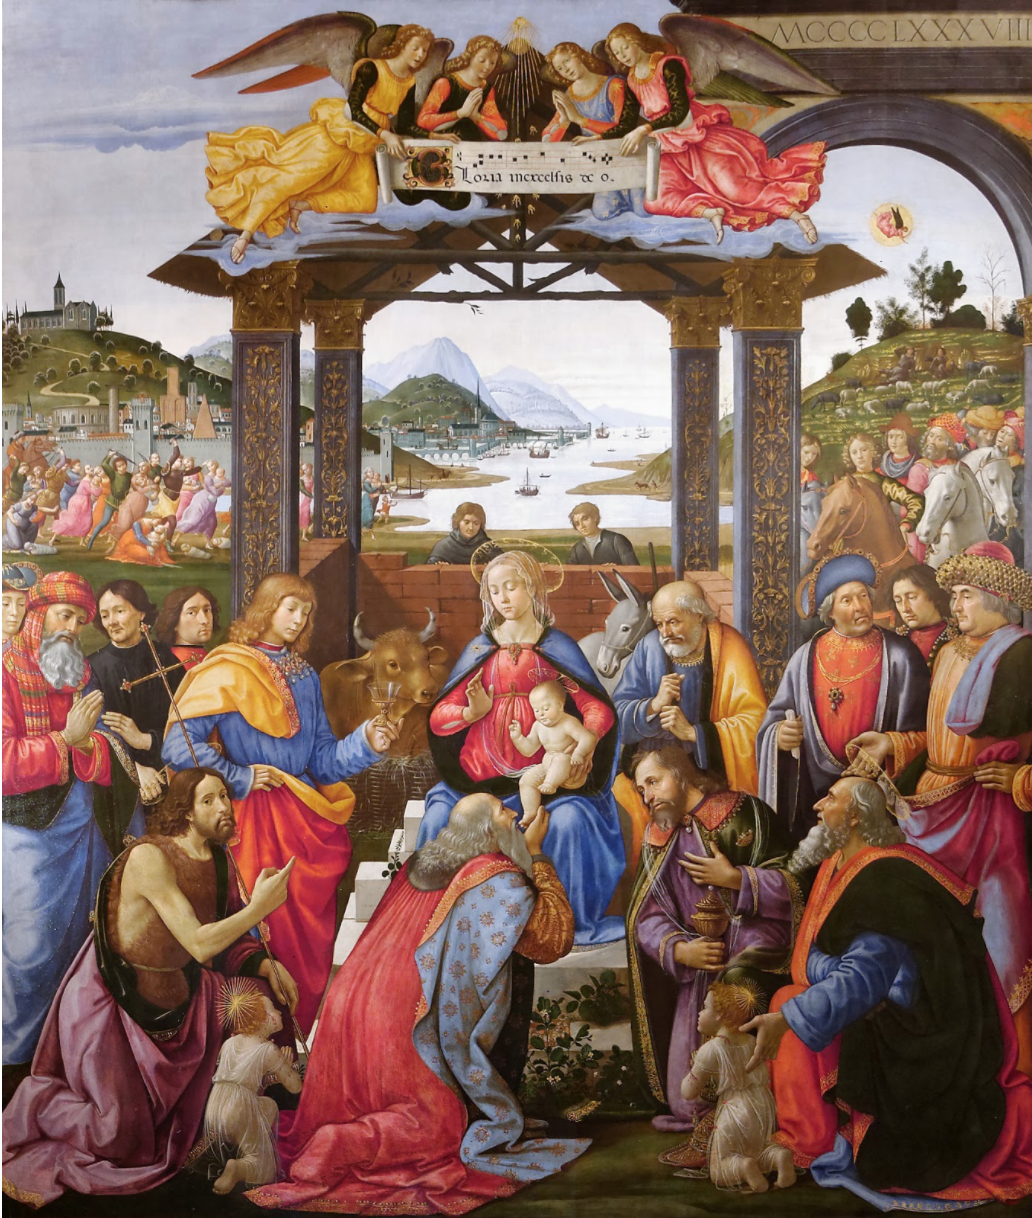 The Innocenti Adoration of the Magi, (1488-1489) - Ảnh wiki